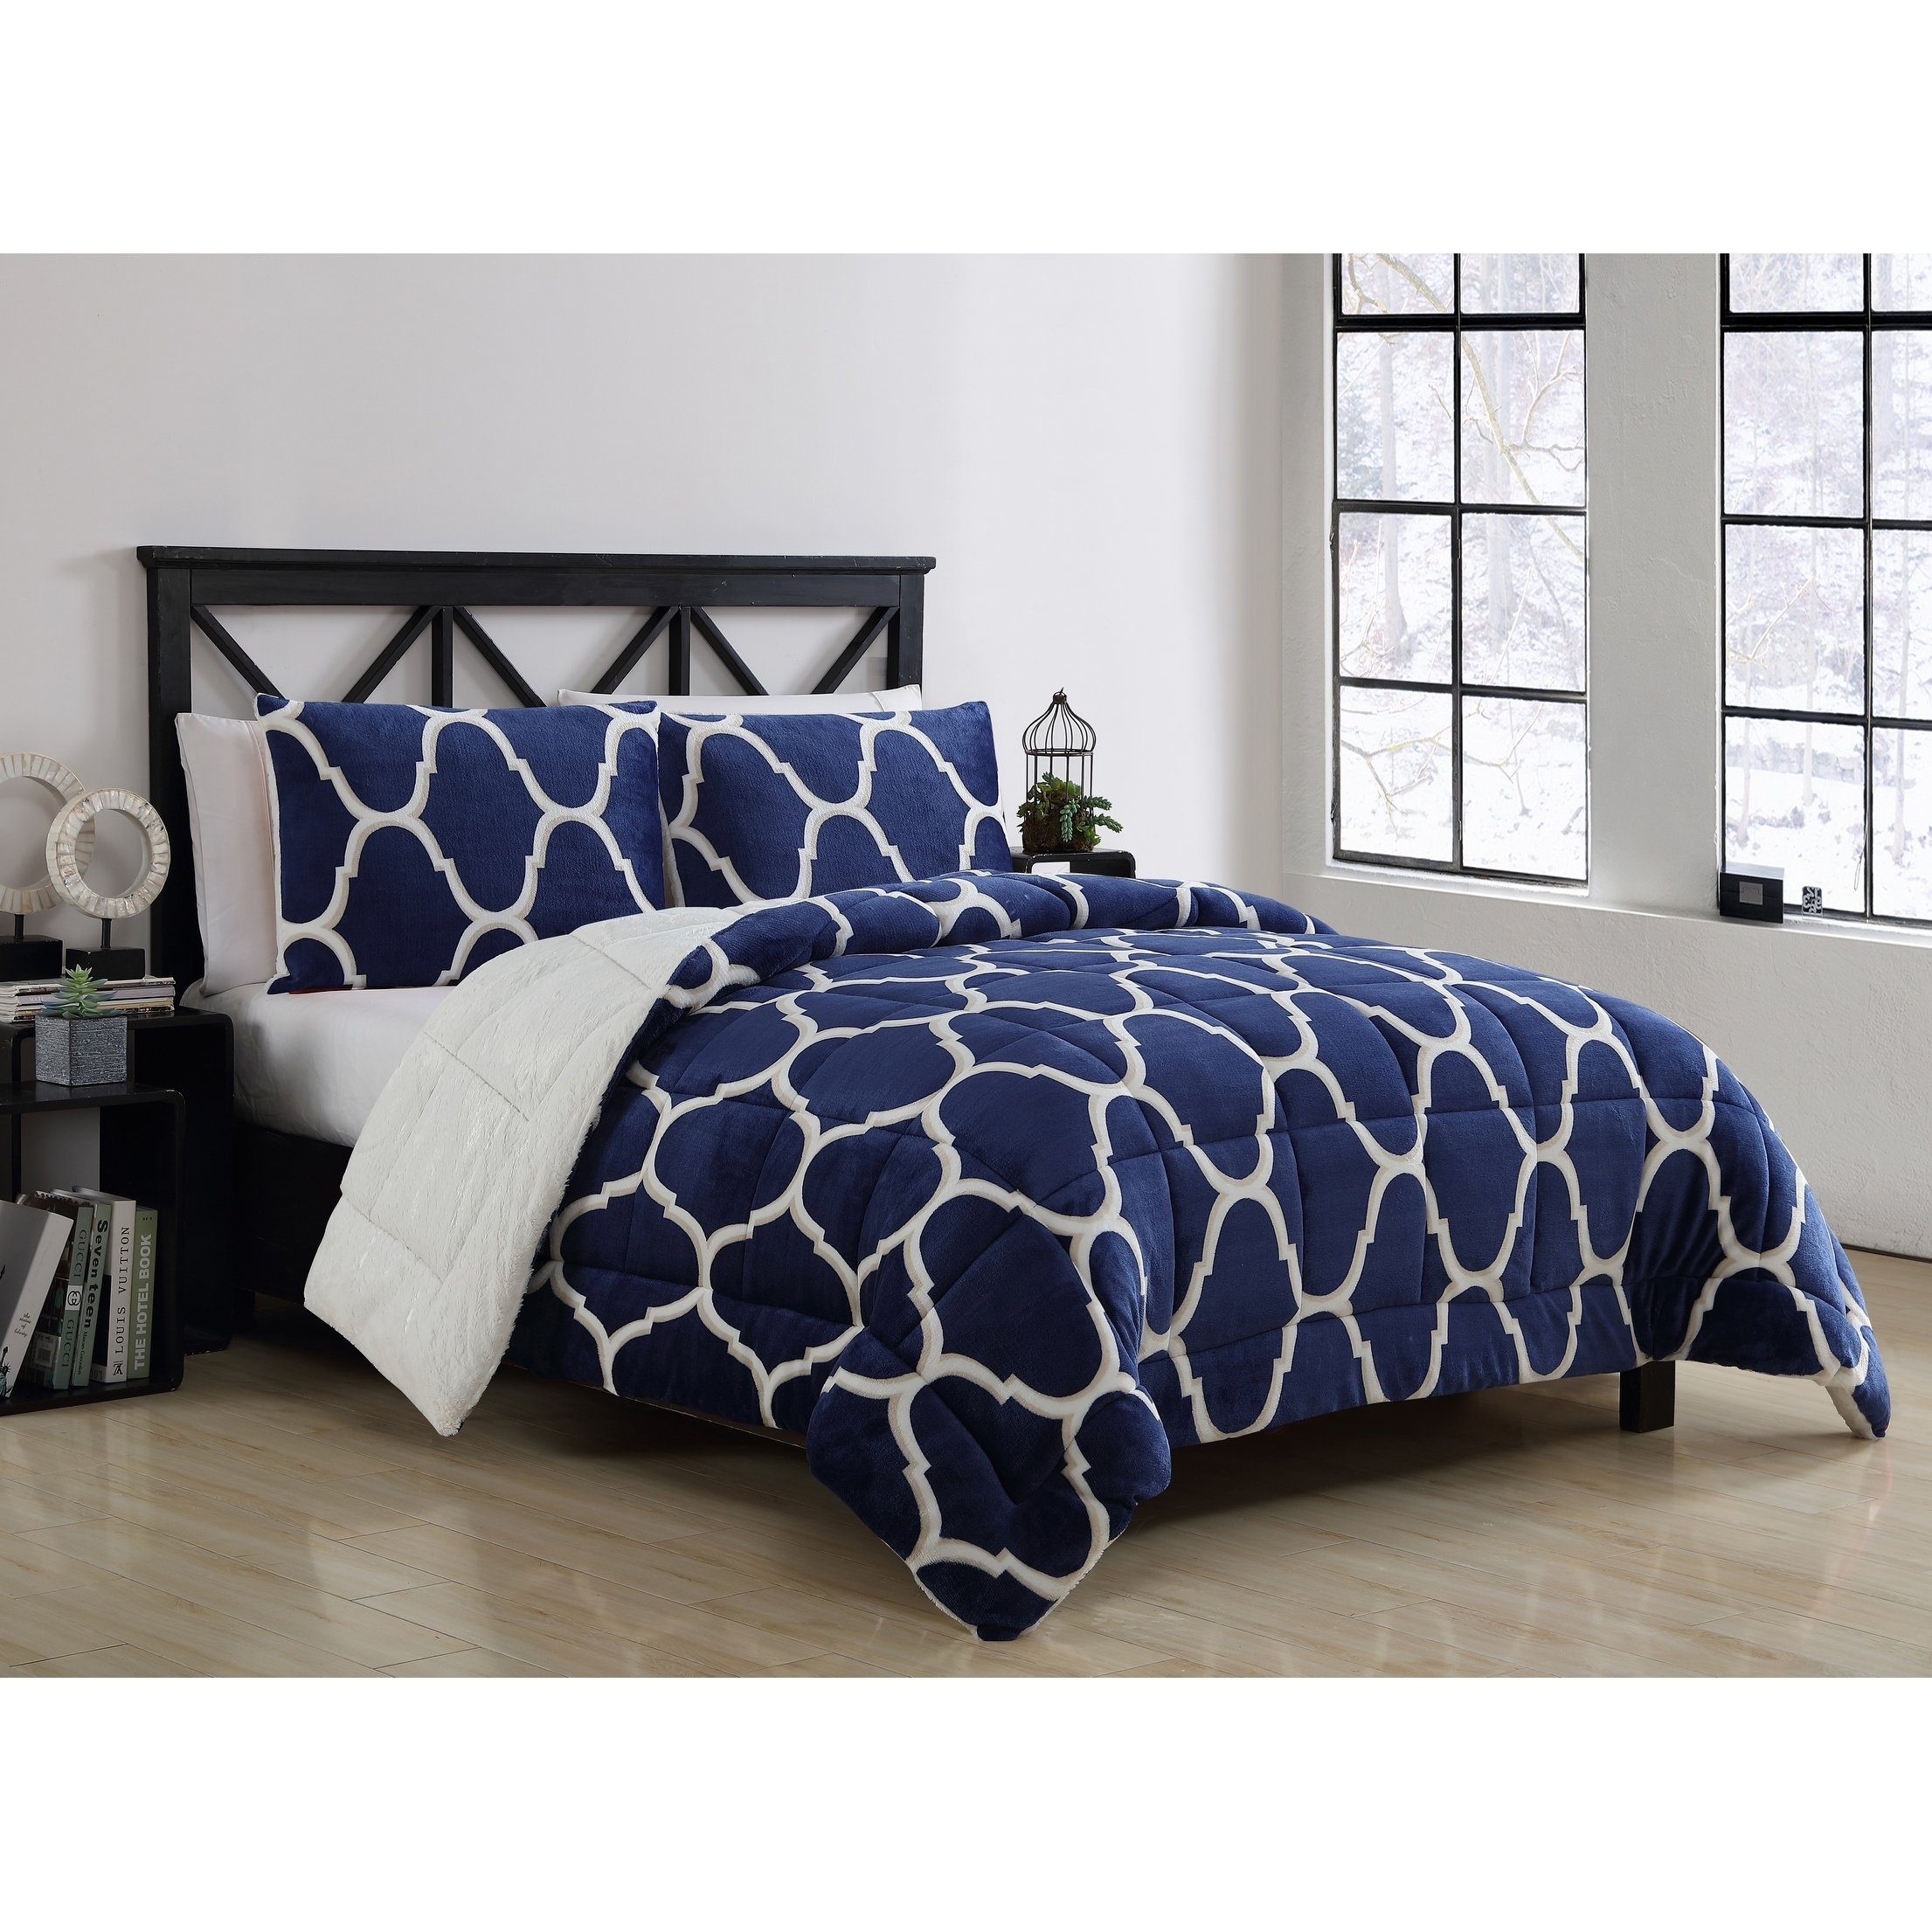 Online Shopping Bedding Furniture Electronics Jewelry Clothing More Comforter Sets Online Bedding Stores Affordable Bedding